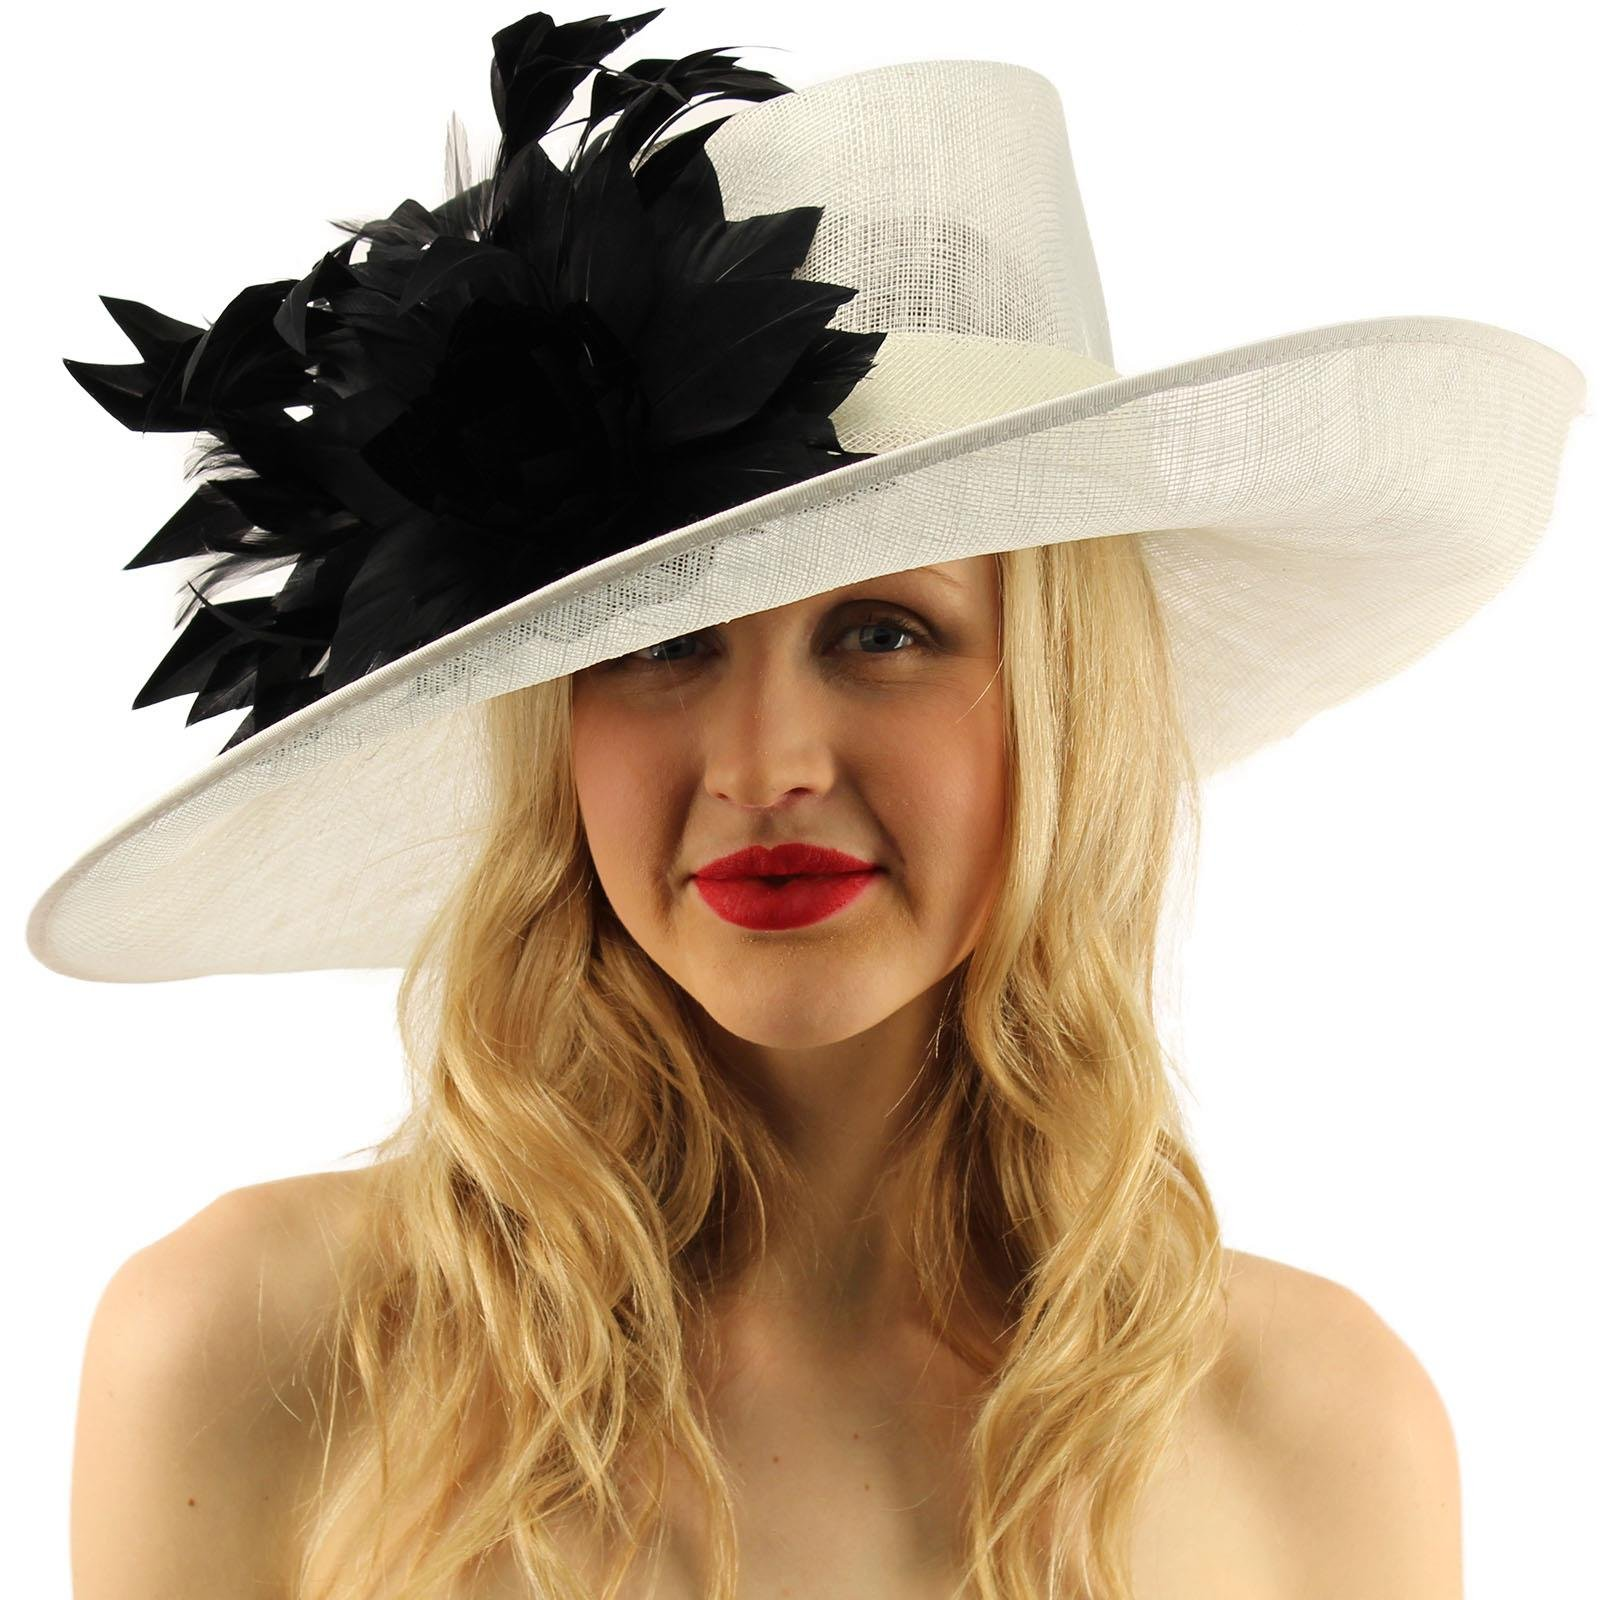 SK Hat shop Glorious Side Flip Sinamy Floral Feathers Derby Floppy Dress Wide Brim Hat White/Black